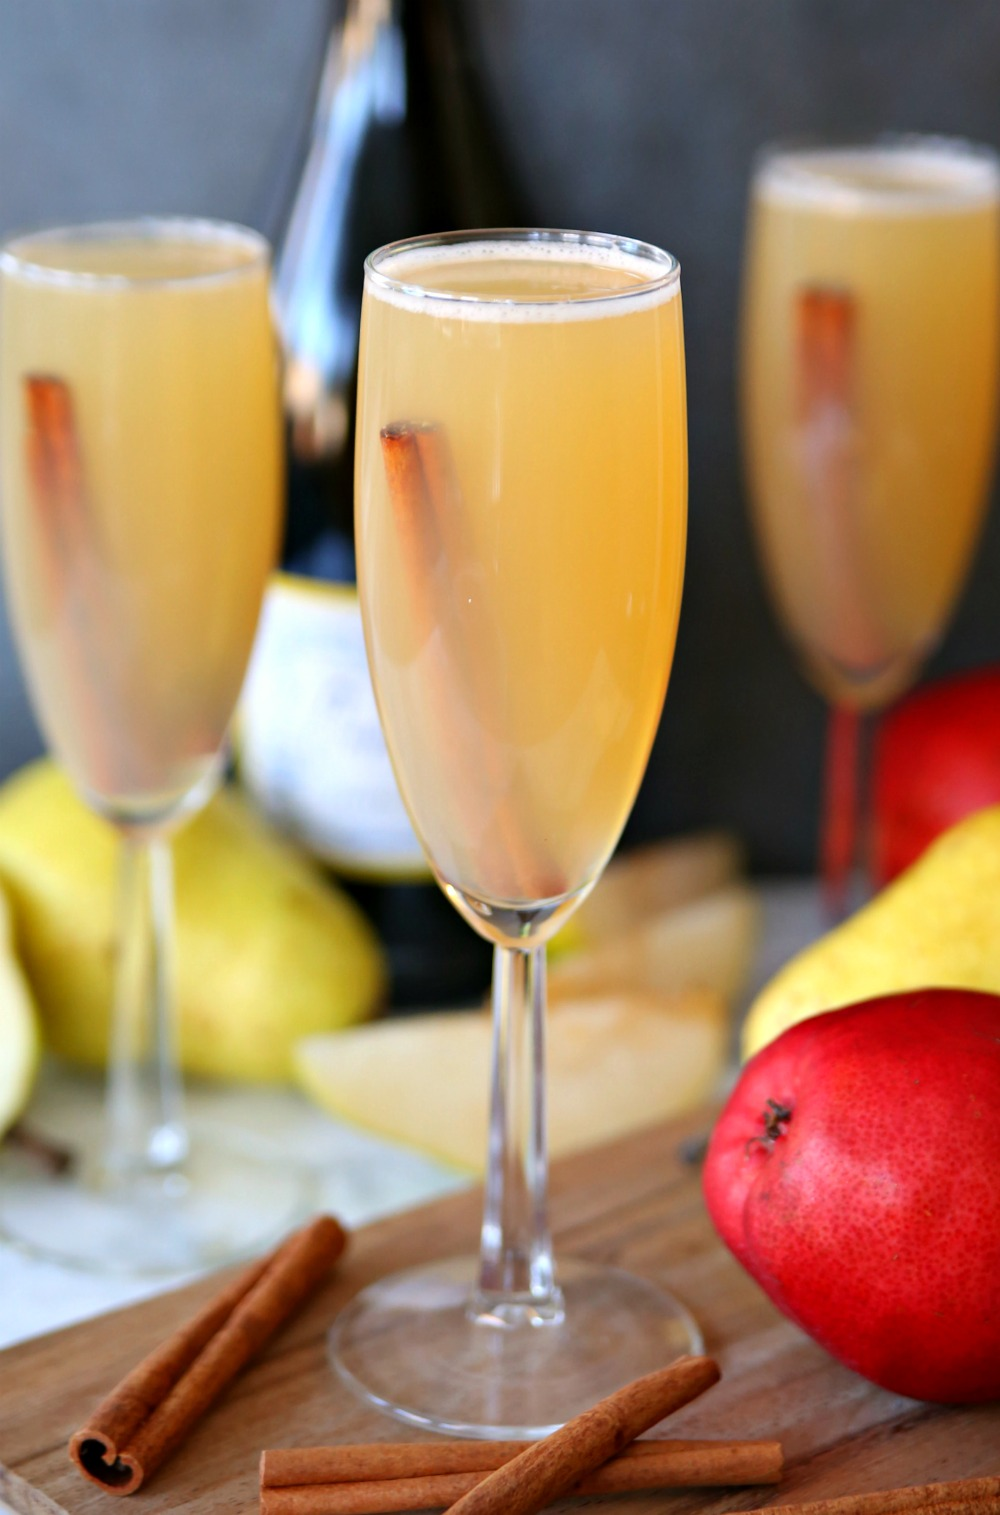 Celebrate the cooler weather with these Spiced Pear Bellinis. A delicious fall cocktail made with pear juice, Prosecco and fall spices.